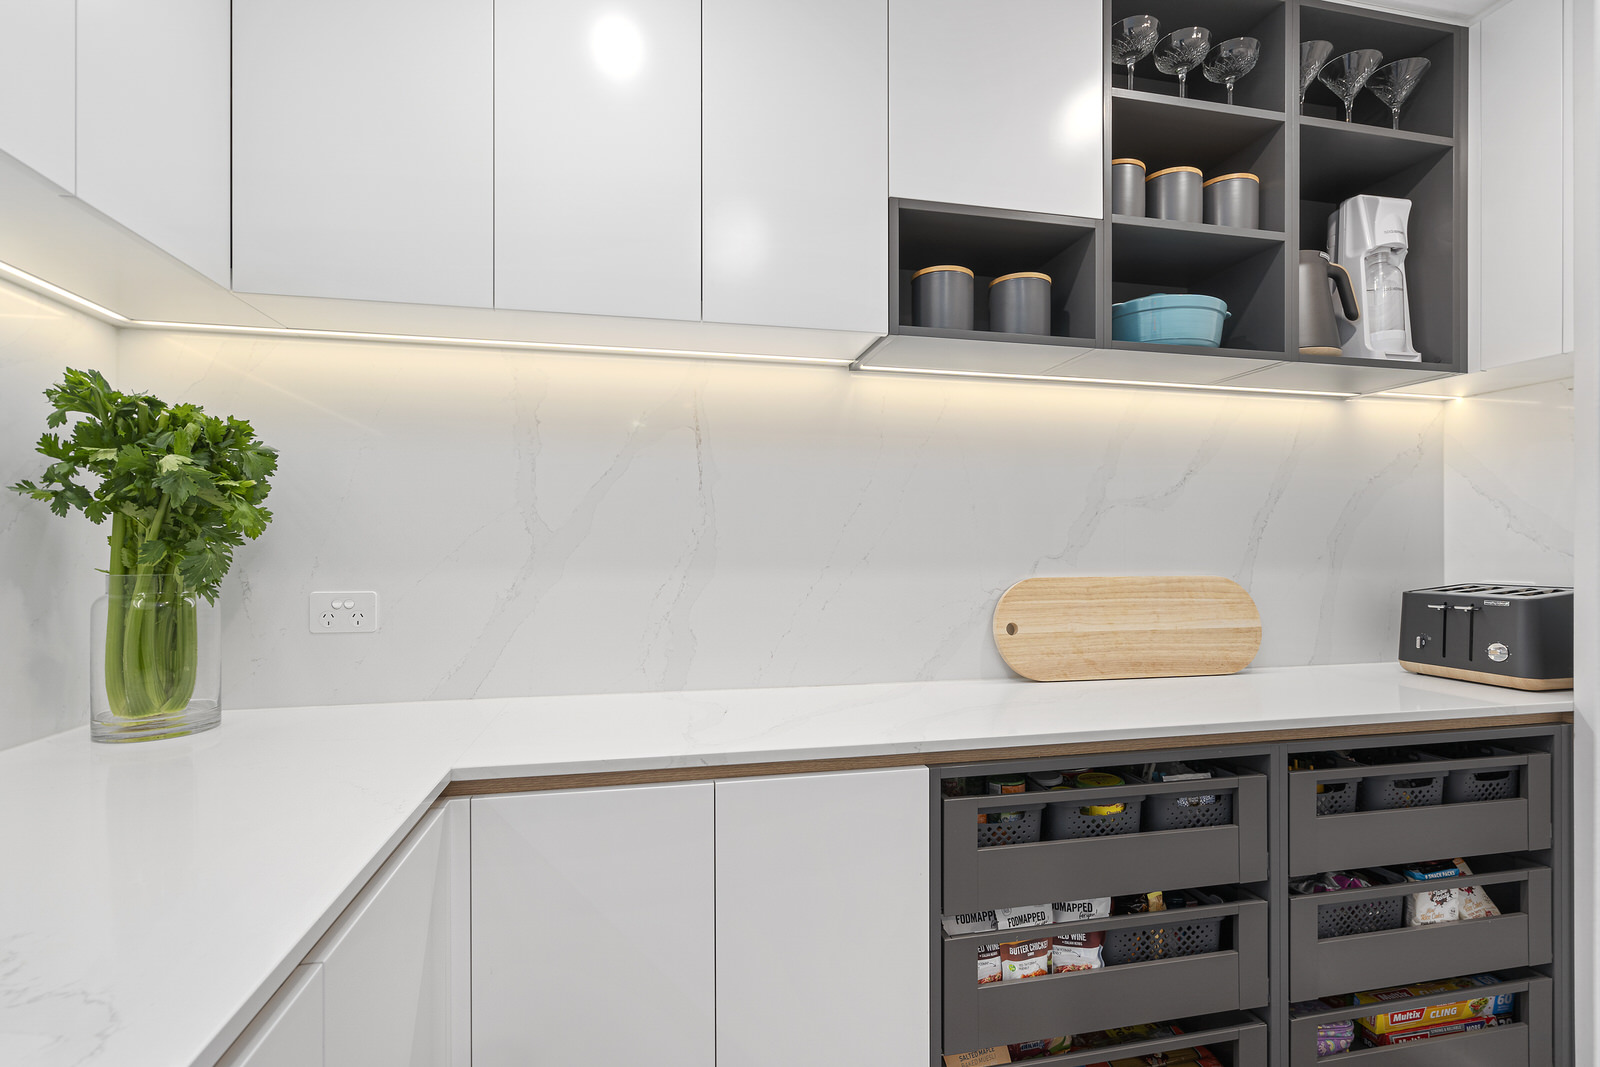 close up shot of our kitchen renovation cabinetry work